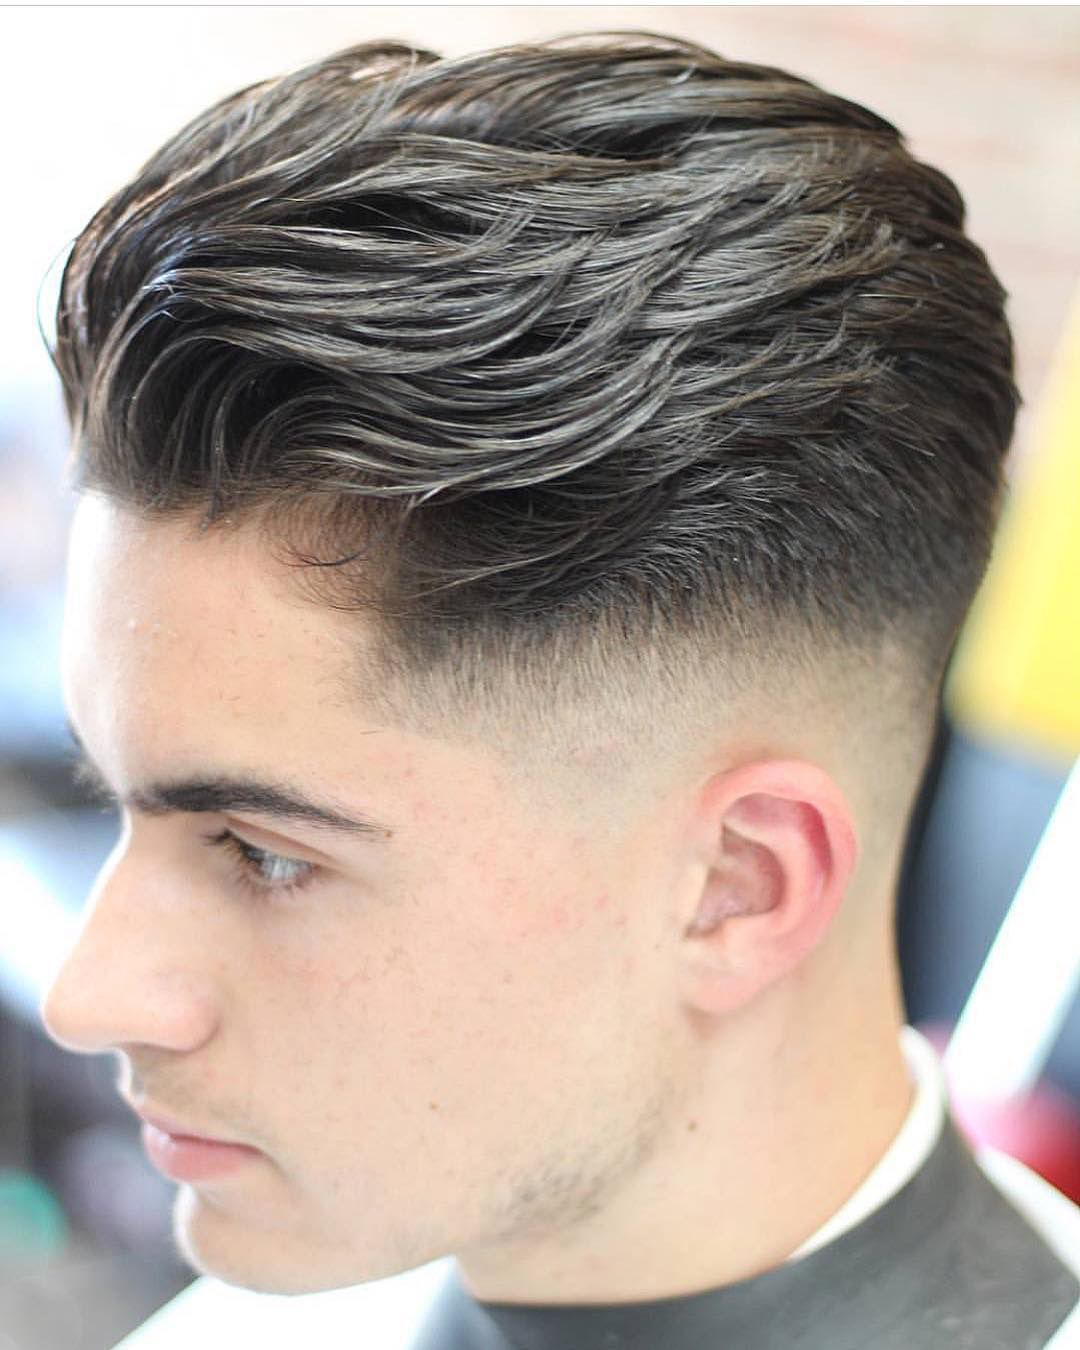 30 Simple Low Maintenance Haircuts For Men 2020 Update Mens Haircuts Short Mens Hairstyles Short Thick Hair Styles